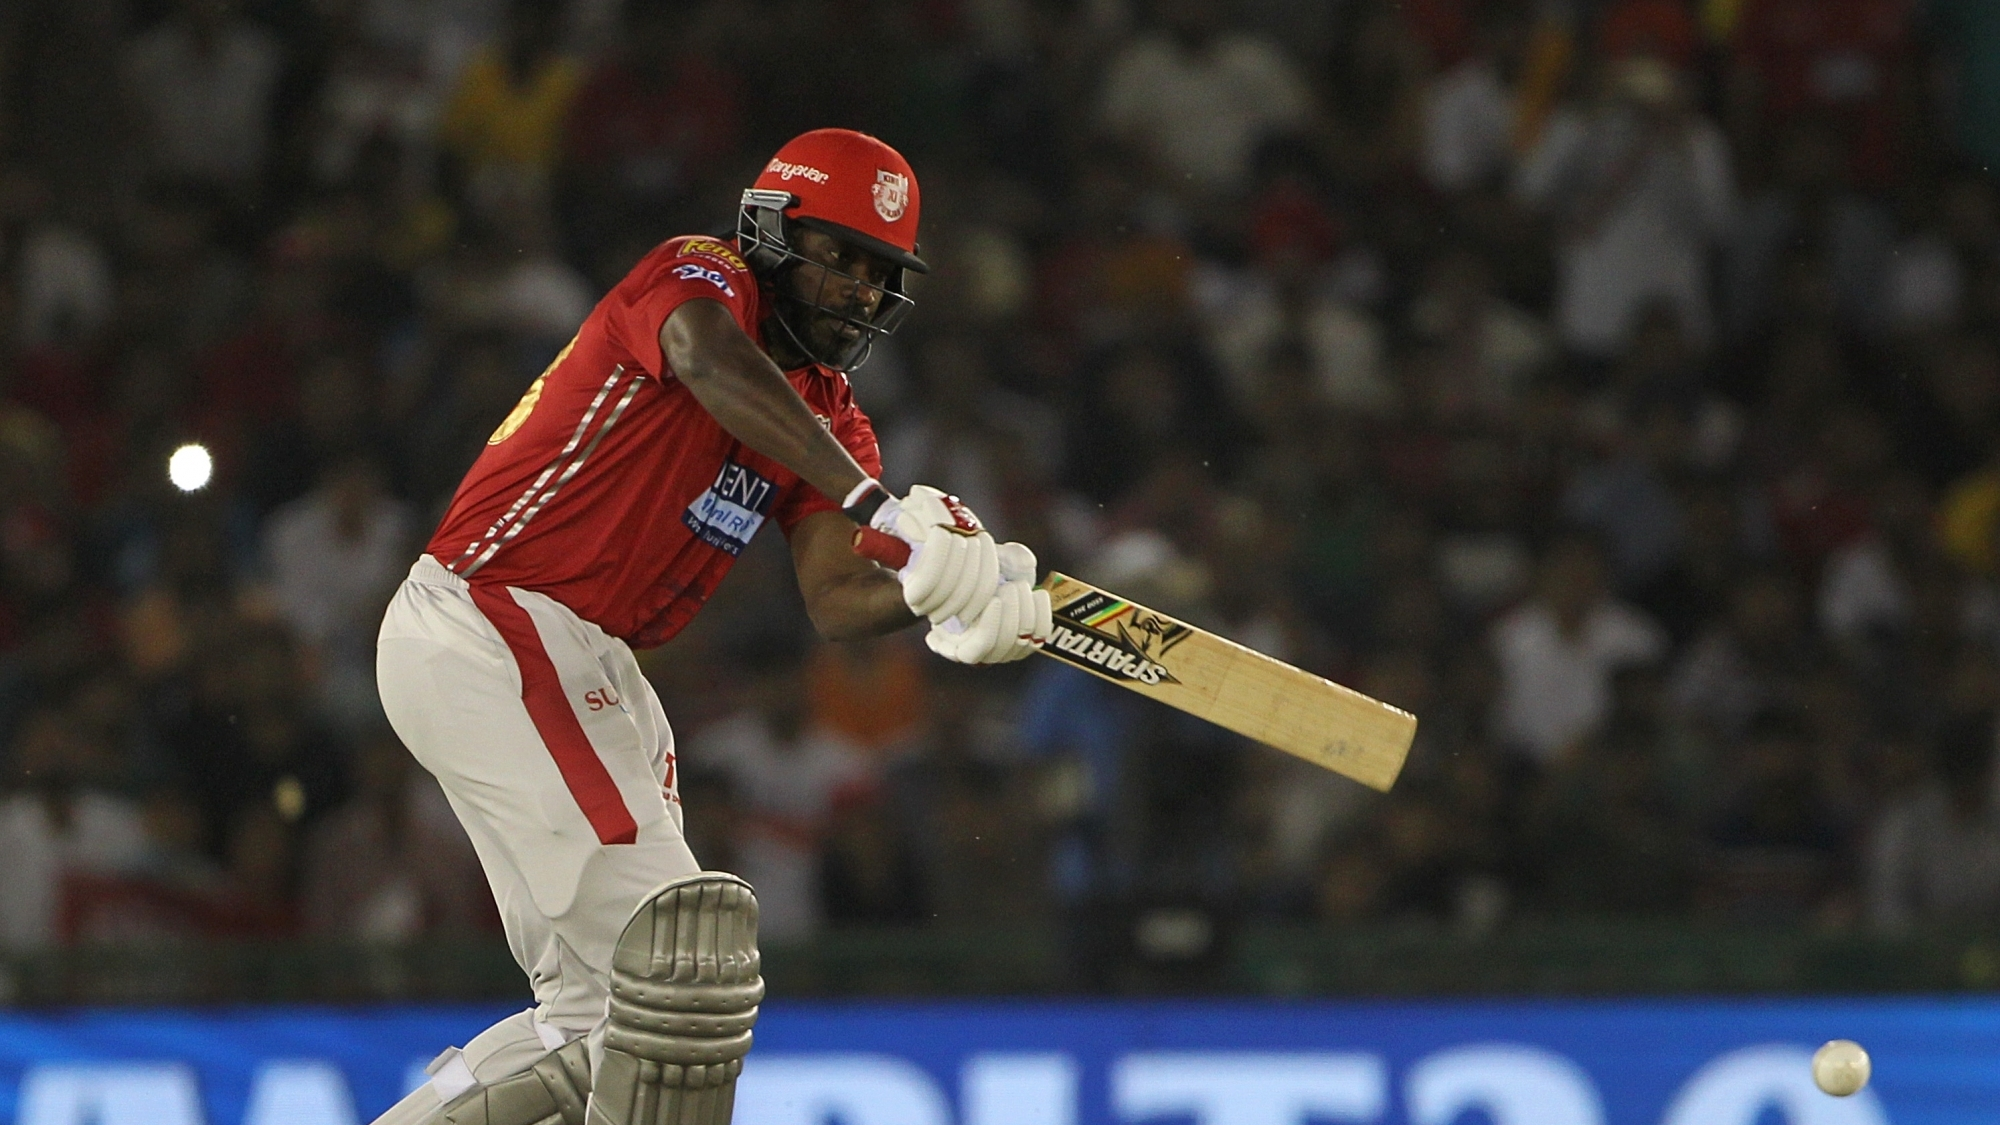 IPL 2018: Twitter trolls RCB as Gayle smashes ton against Sunrisers Hyderabad